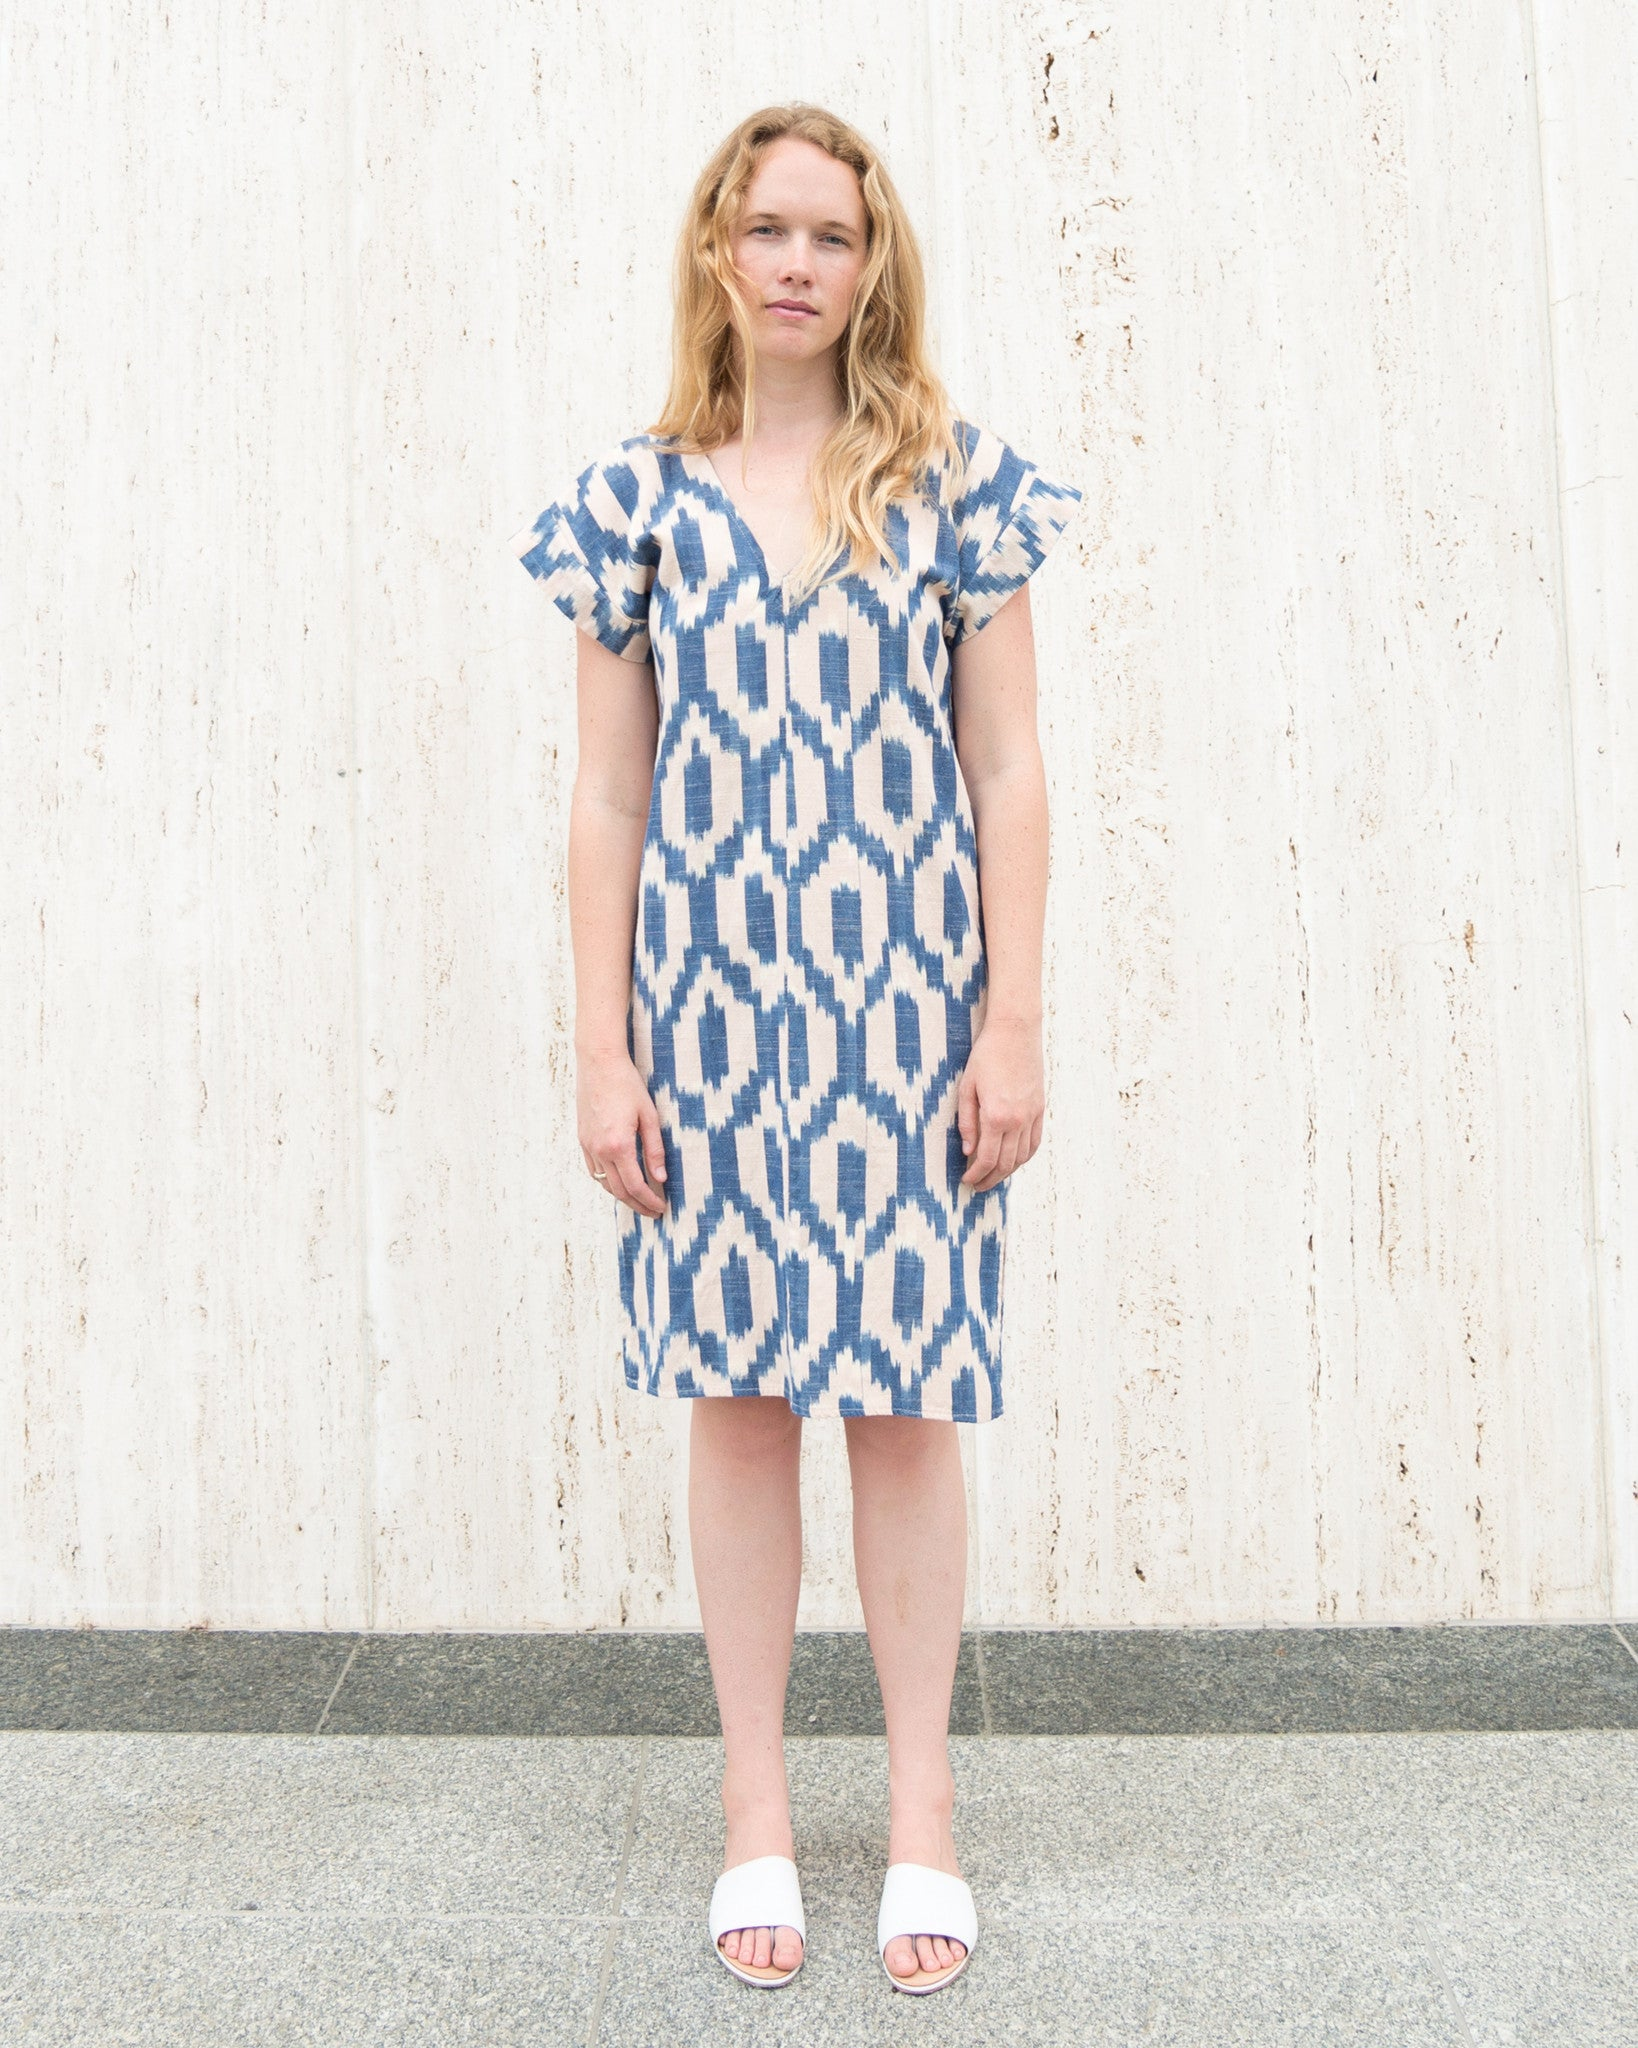 esby-apparel-womenswear-designed-in-austin-made-in-usa-annie-dress-blush-blue-ikat